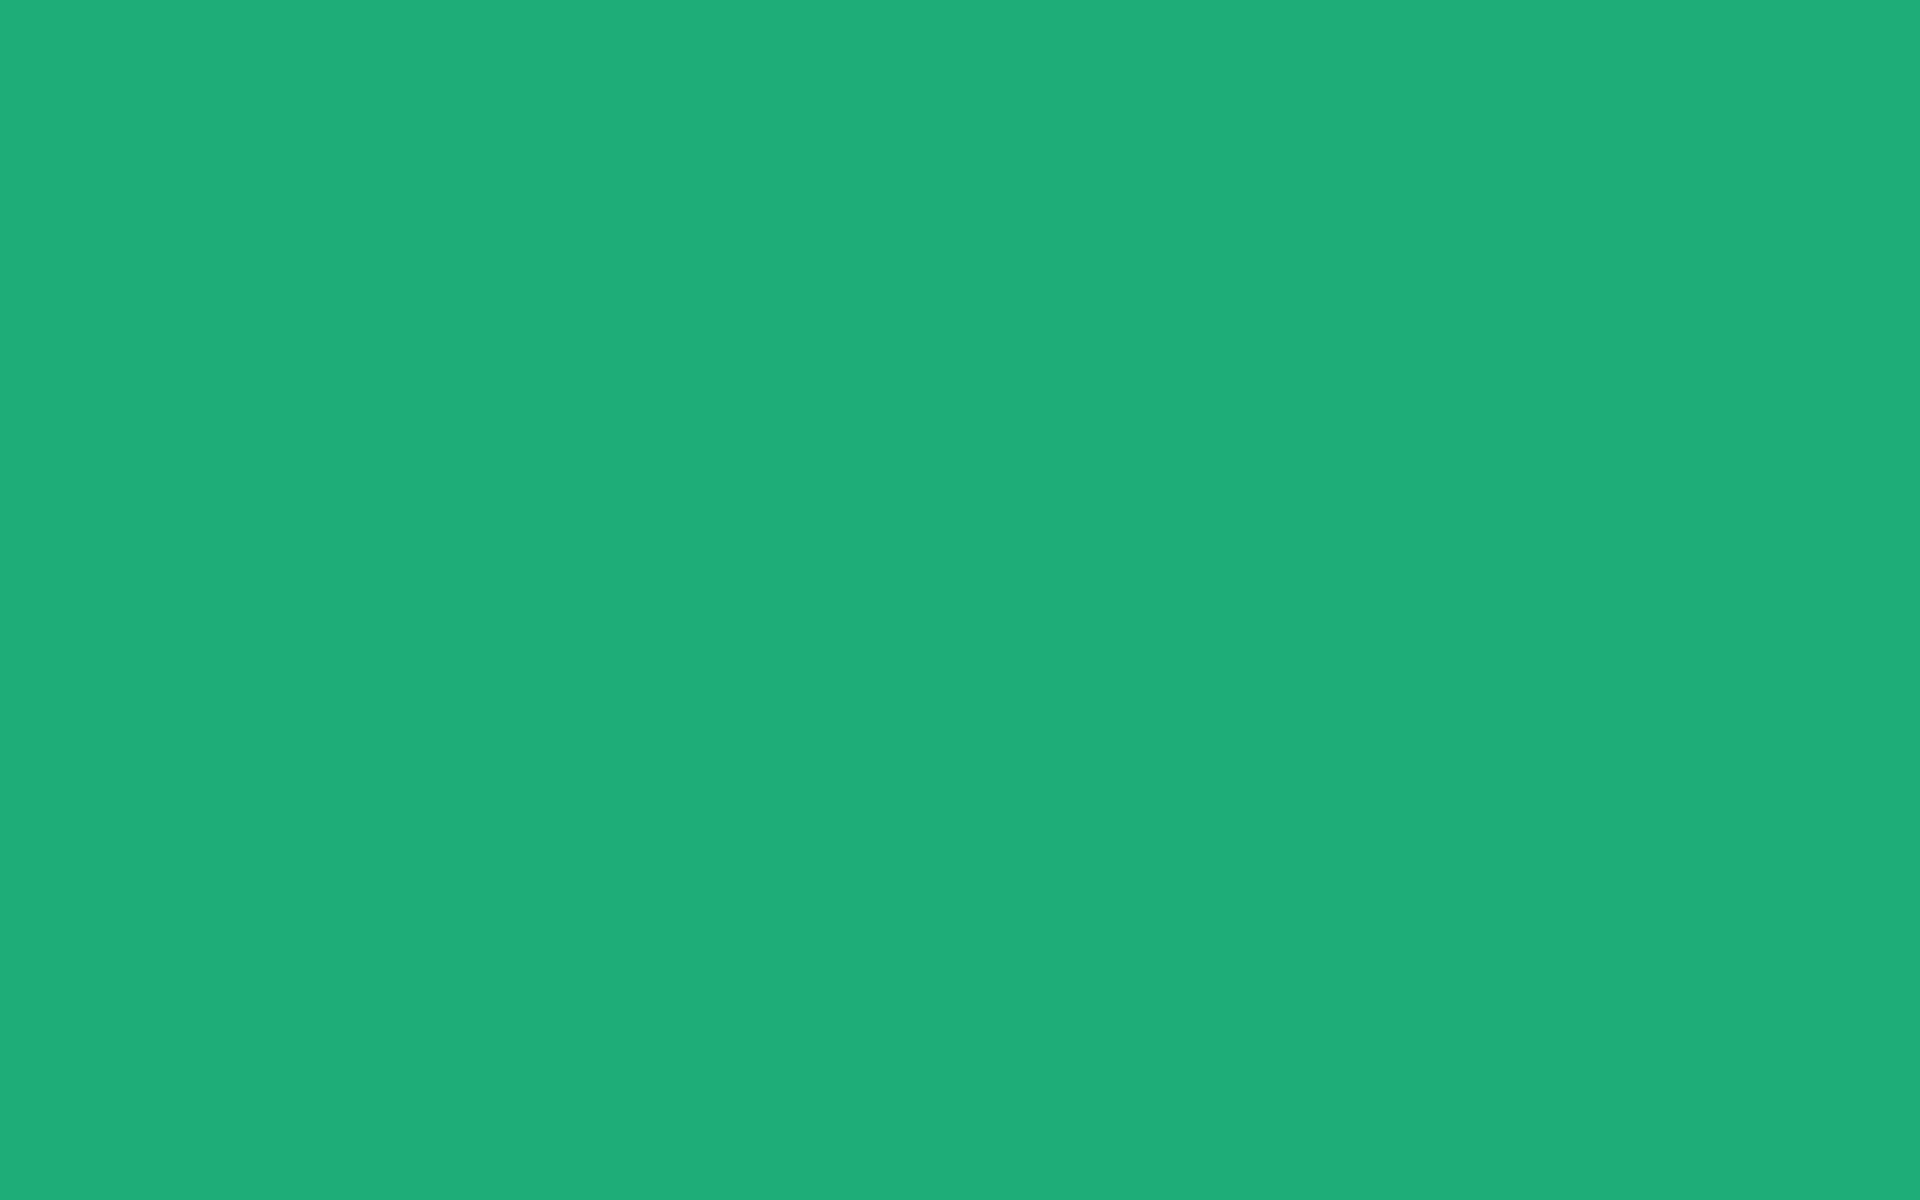 1920x1200 Green Crayola Solid Color Background